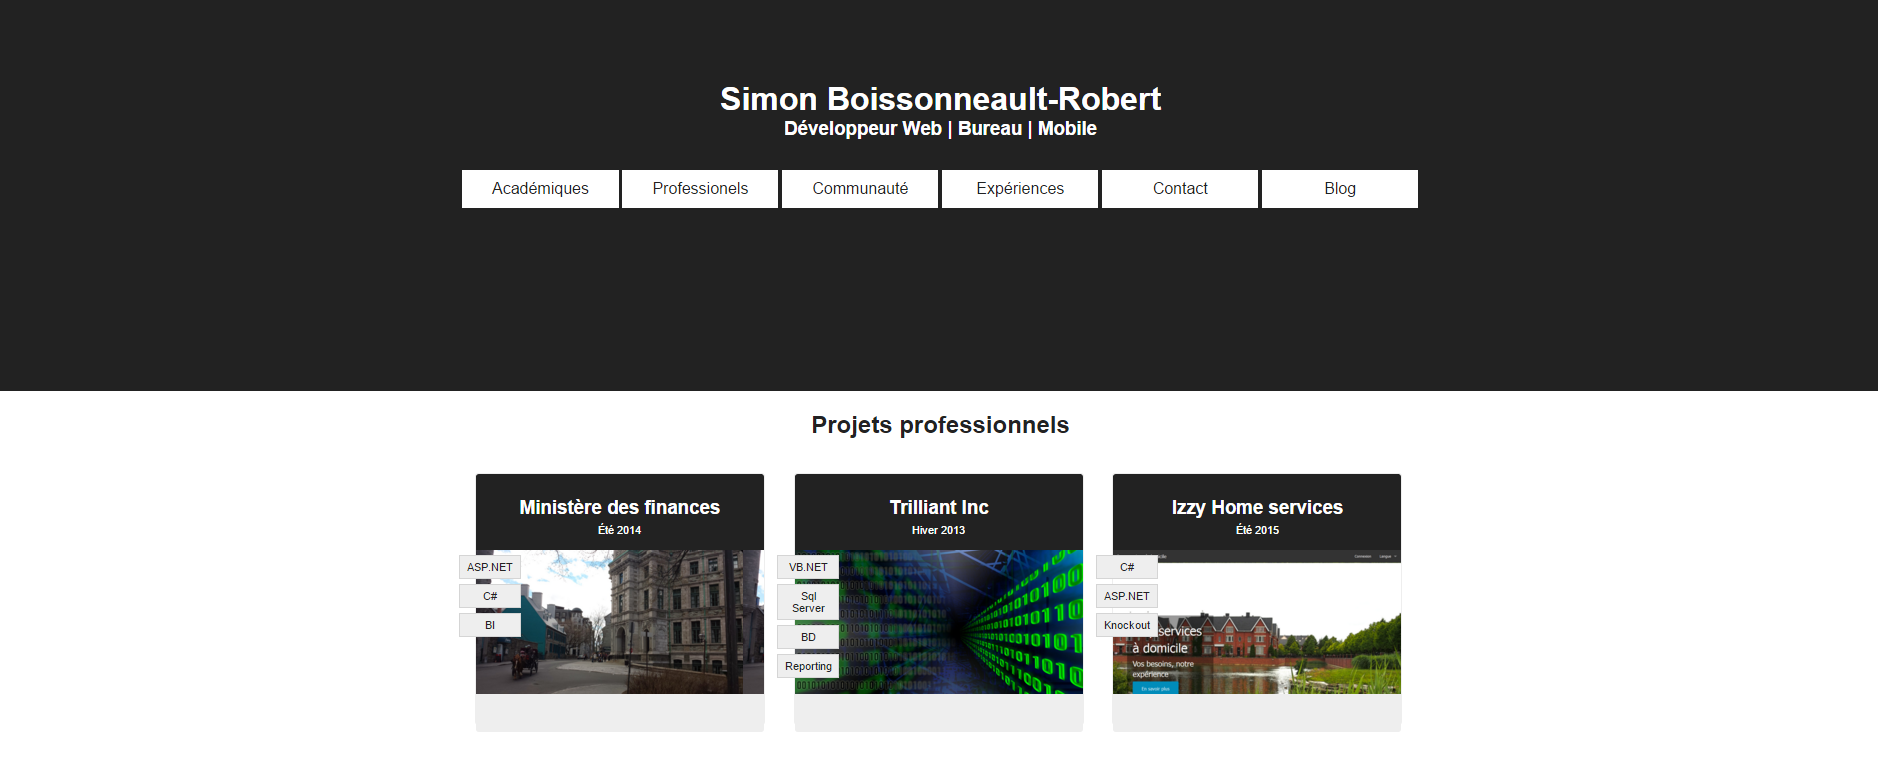 simon boissonneault robert - cv